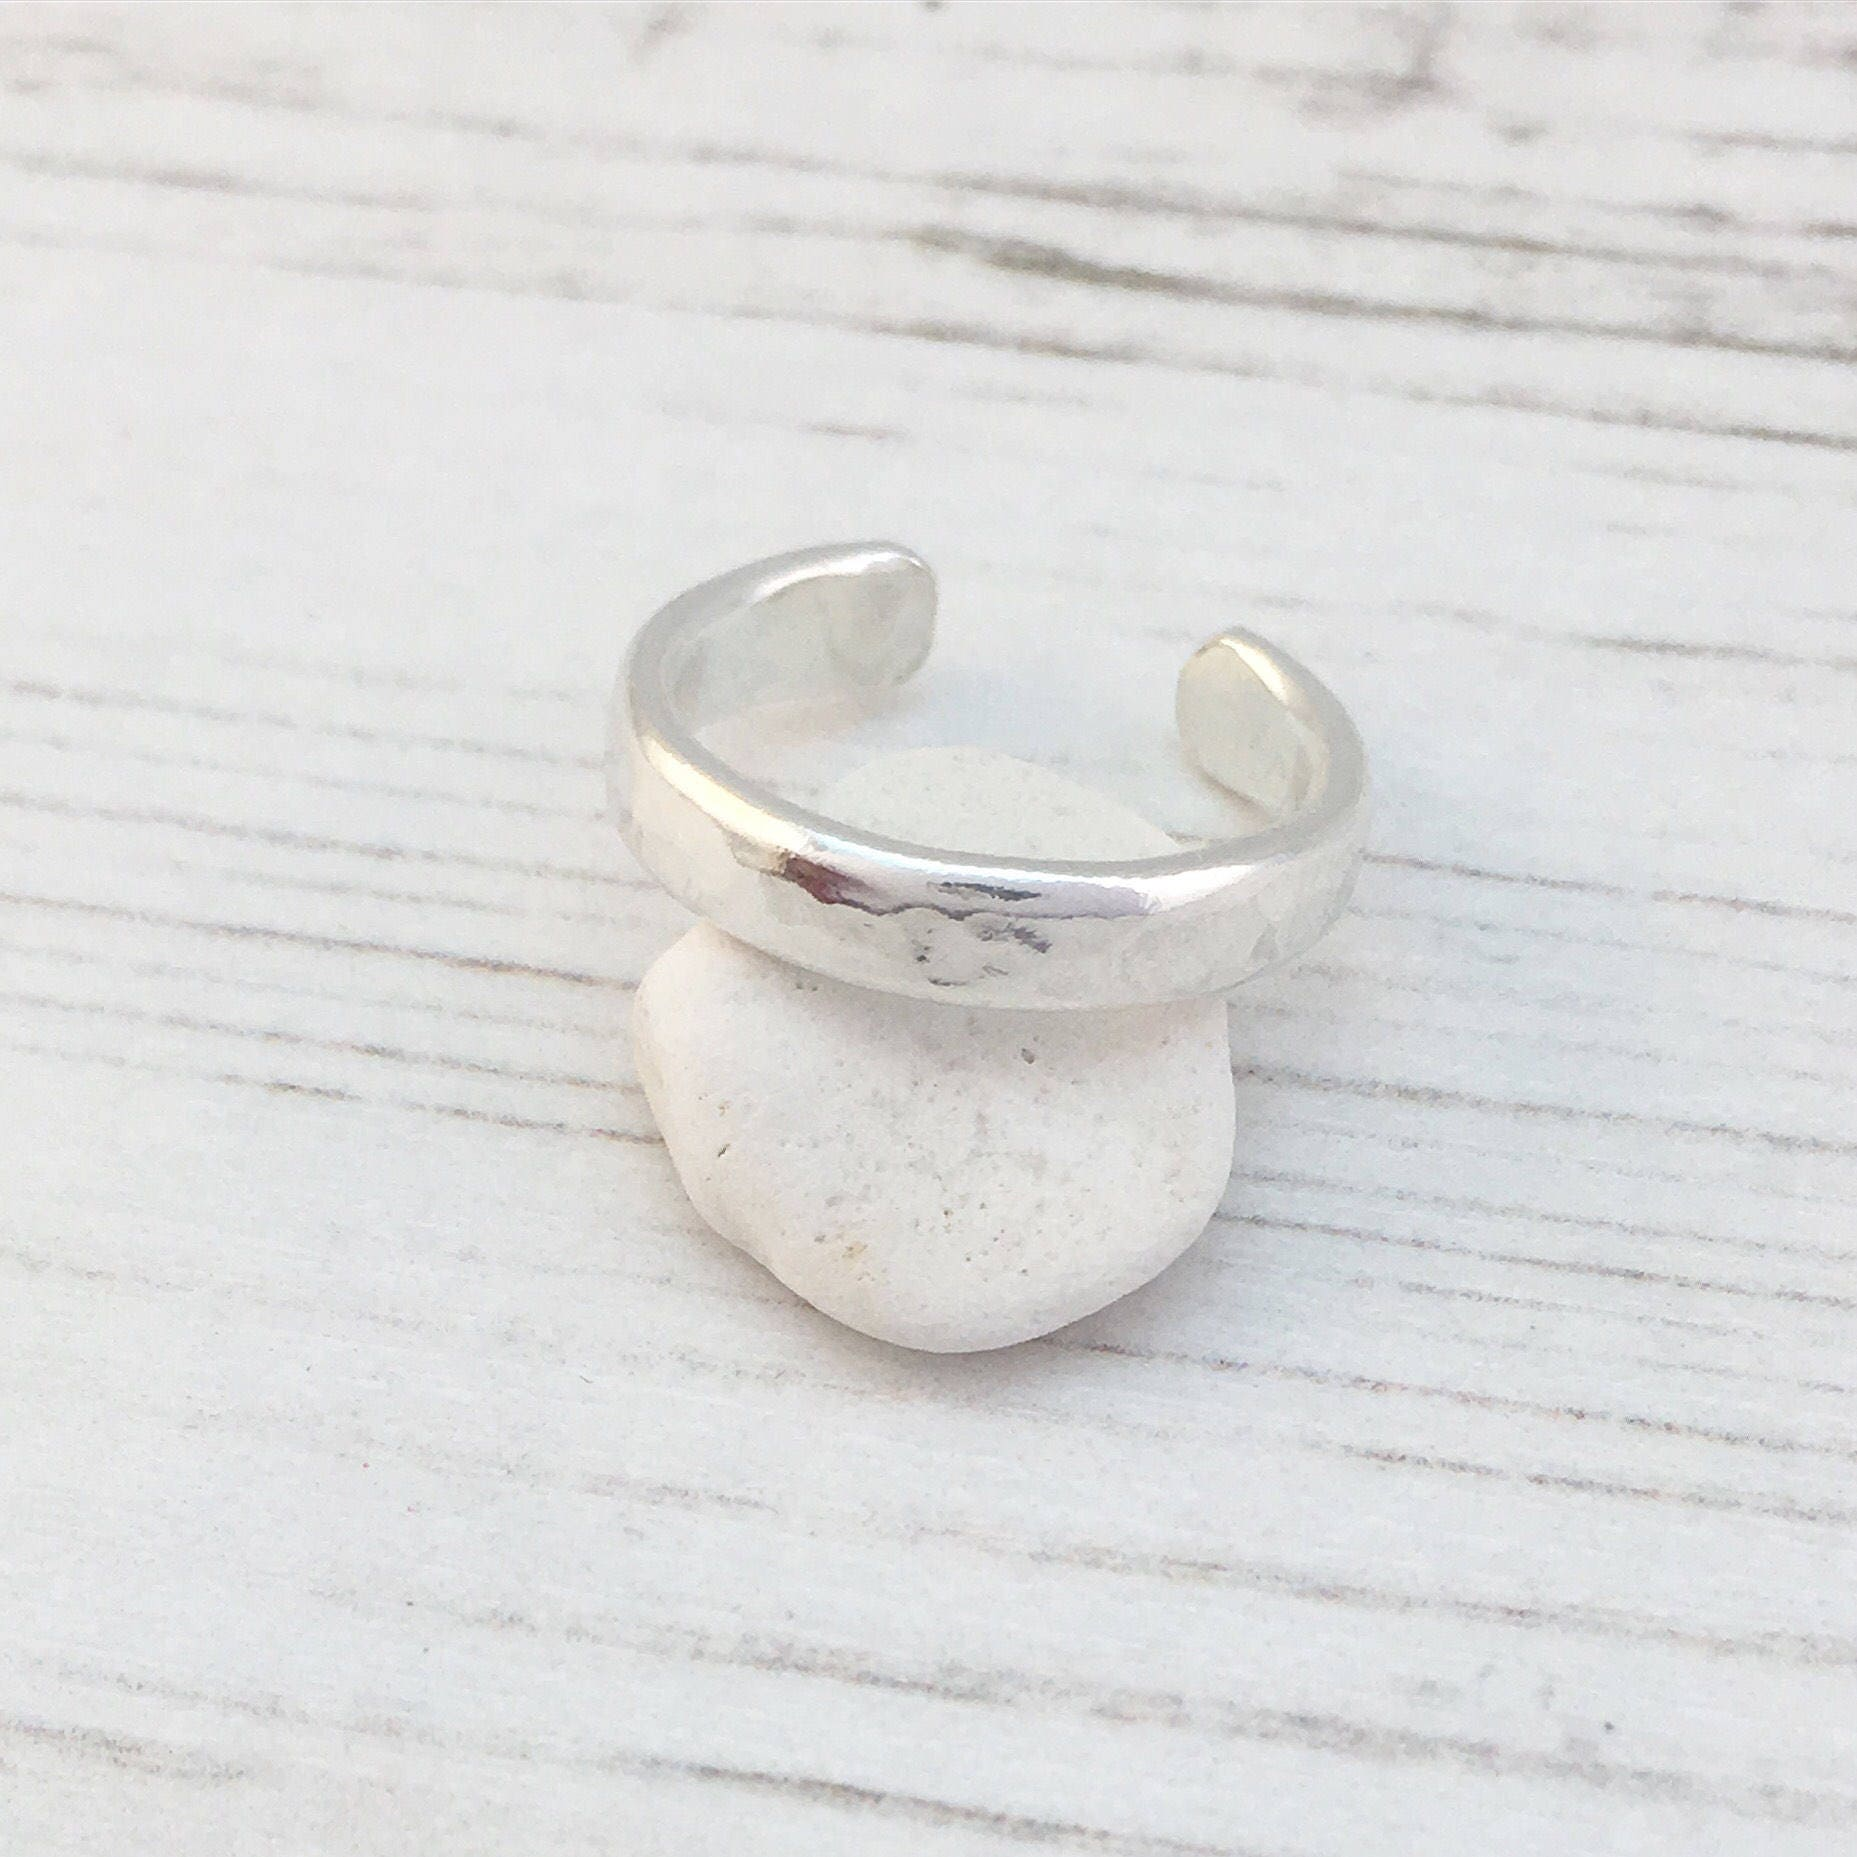 Silver Toe Ring Sterling Silver Toe Ring Hammered Silver Toe Ring Summer fashion Body Jewellery Boho Jewellery Adjustable Silver Ring